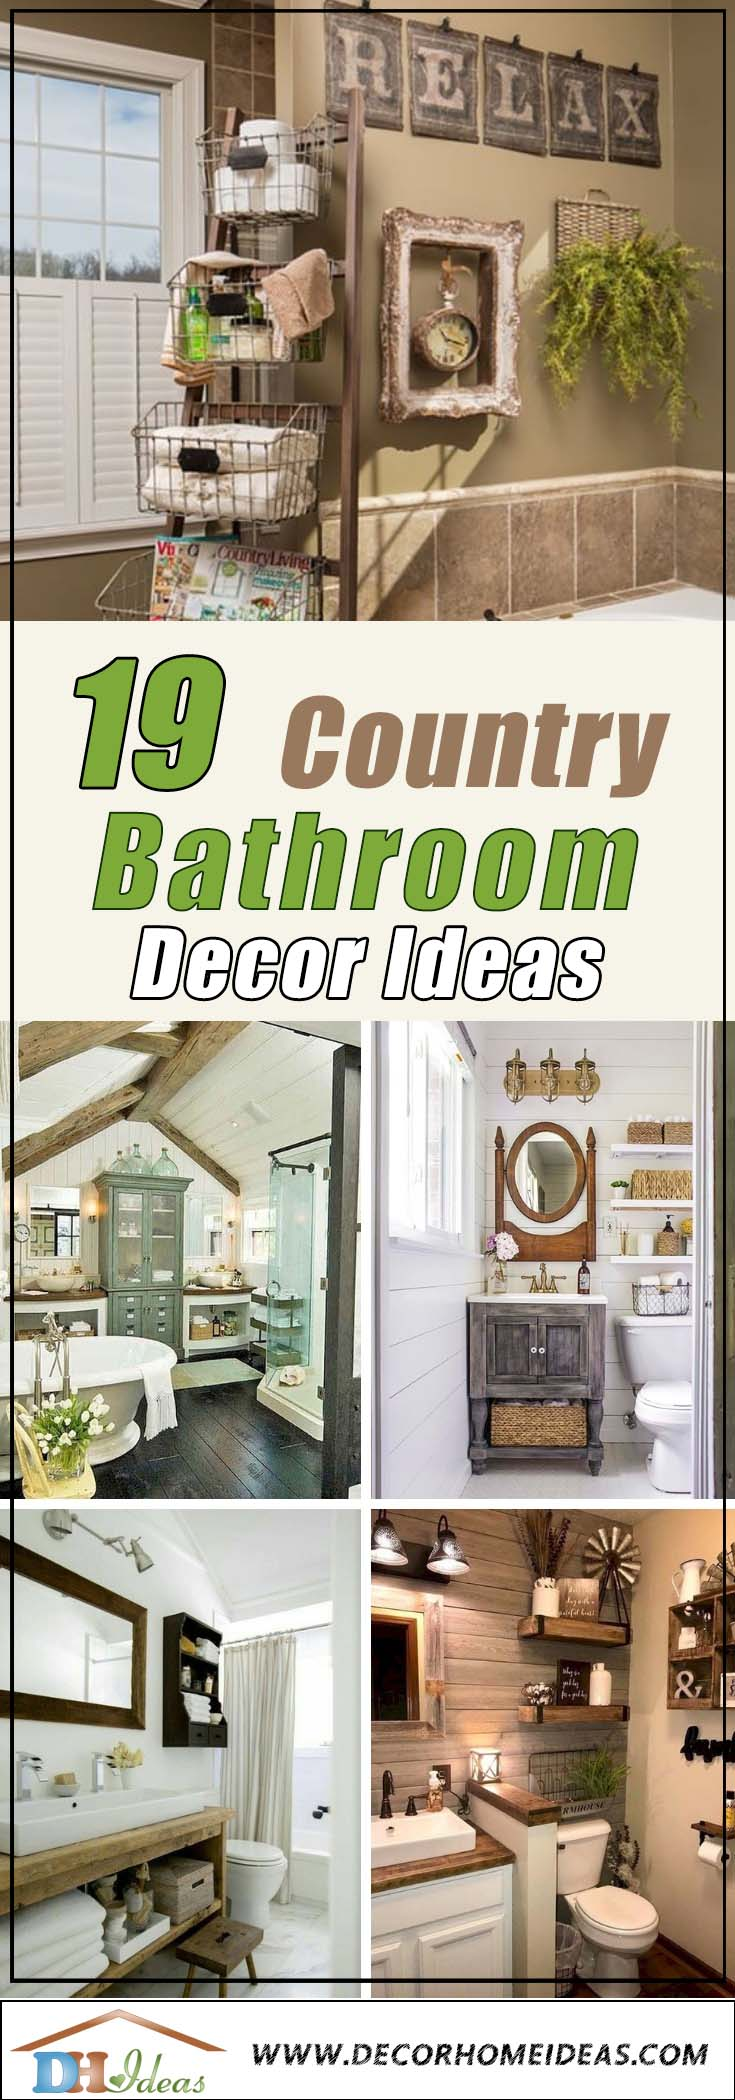 Country Bathroom Decor Ideas #countrybathroom #countrydecor #bathroom #farmhouse #decorhomeideas